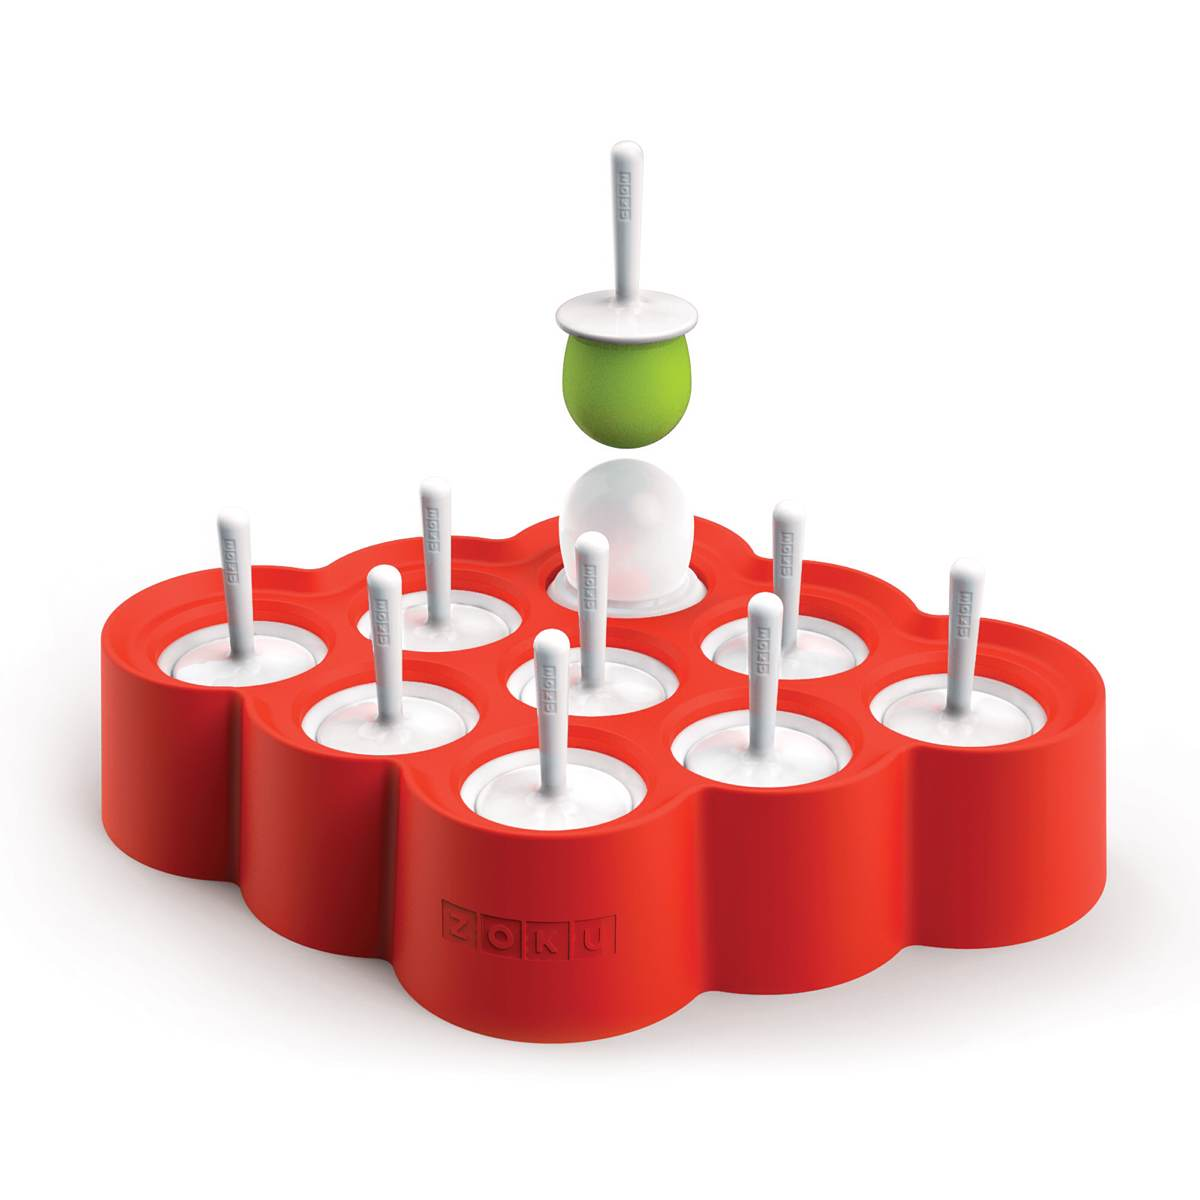 Zoku Slow Pops — Mini Pop Molds